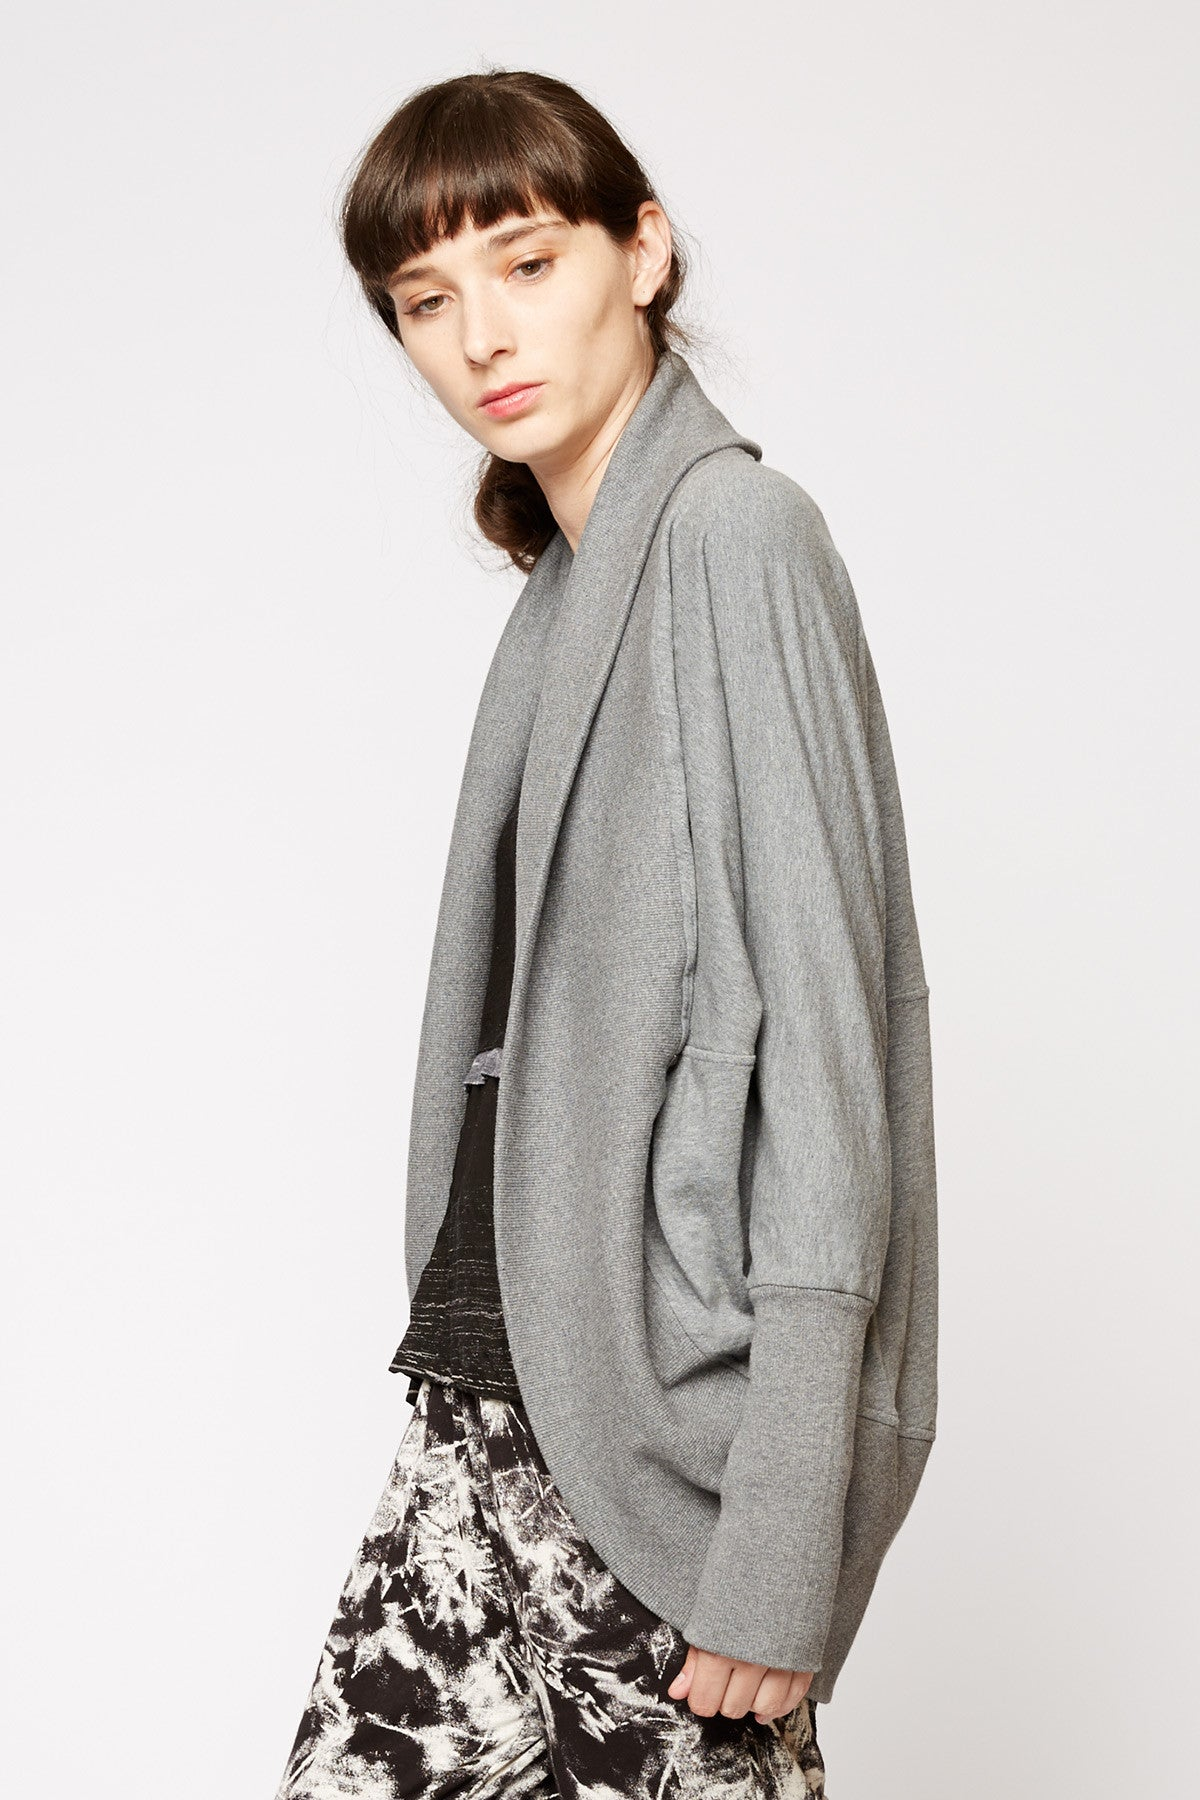 Coeus Shrug Cardigan by Tulle